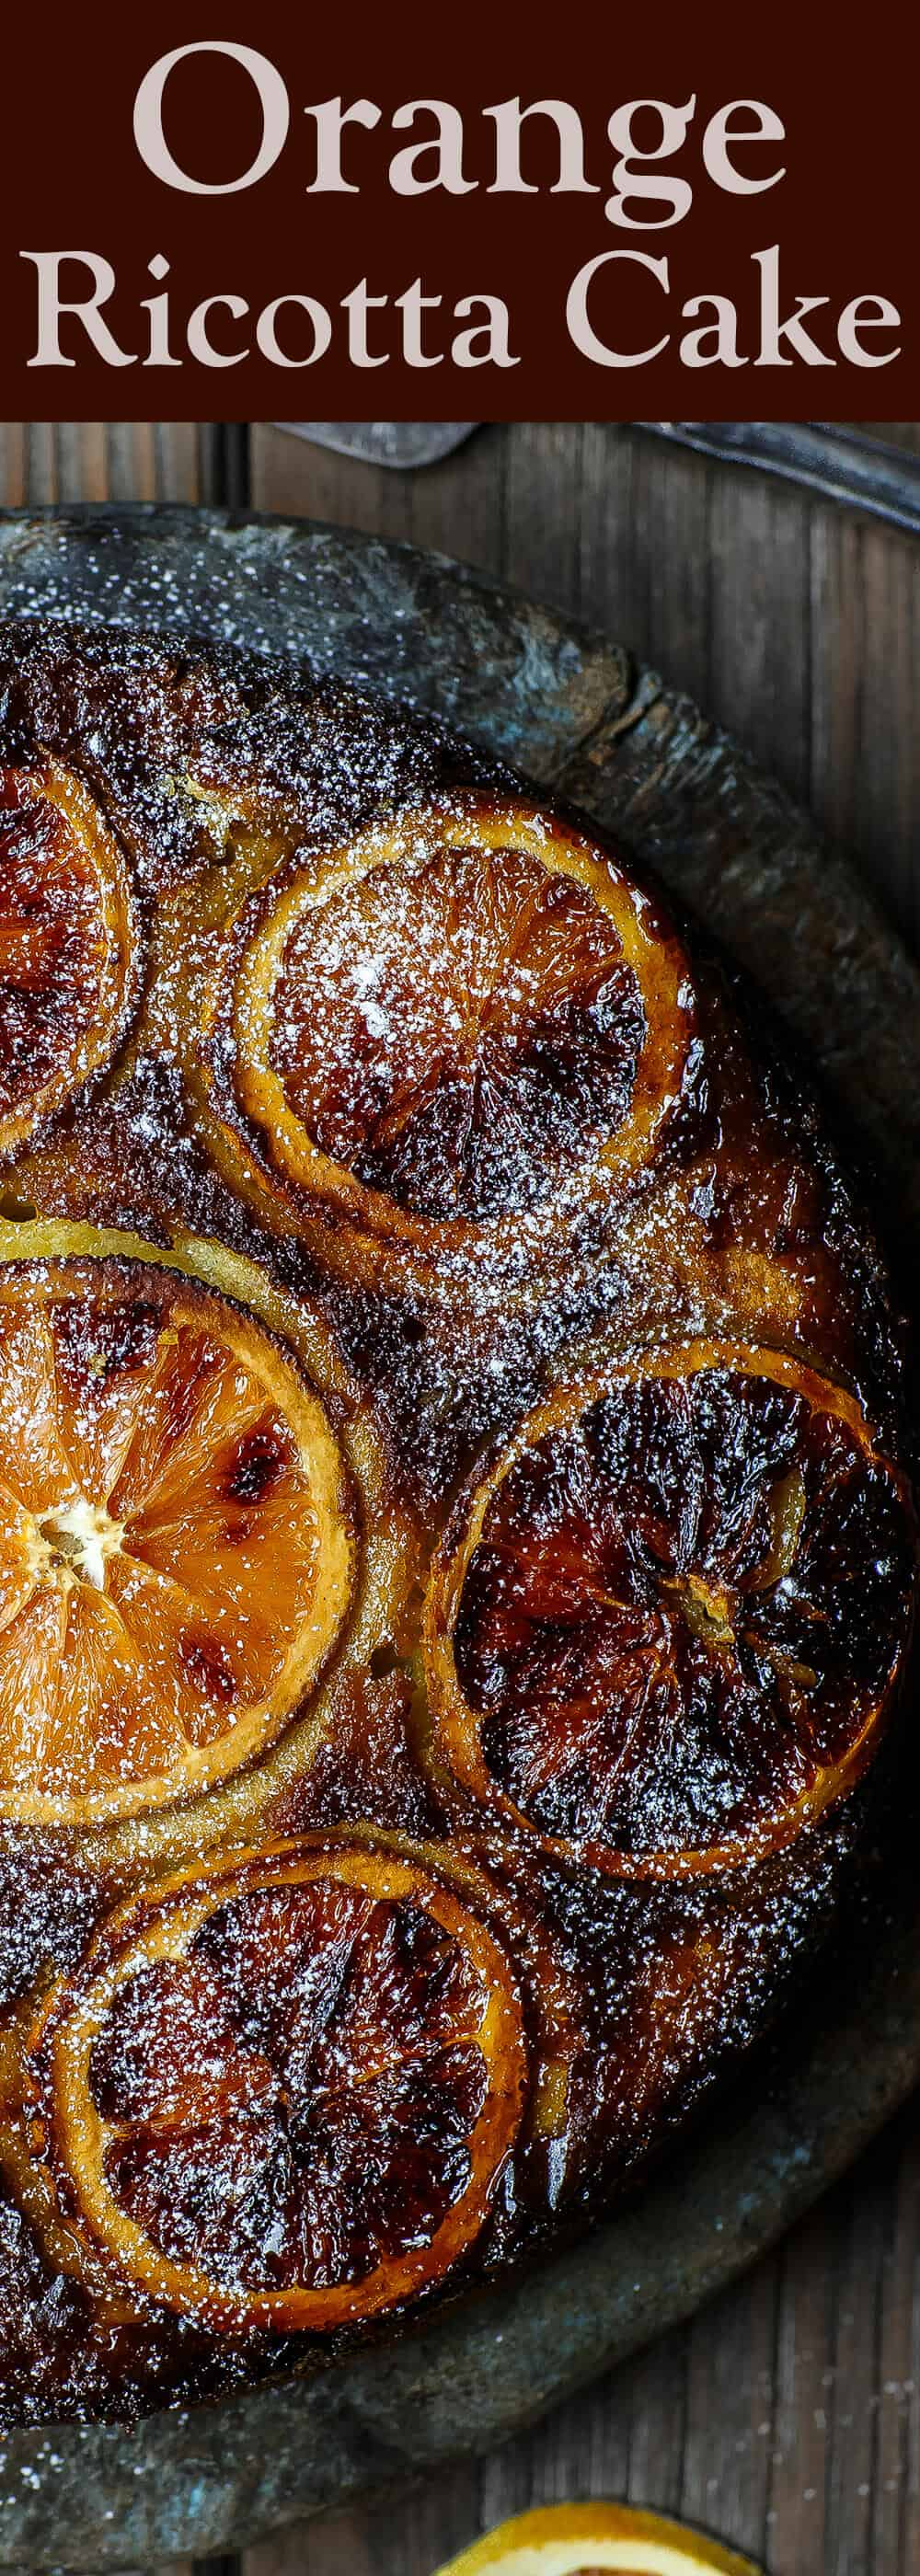 Lighter Orange Ricotta Cake | The Mediterranean Dish. Healthier ricotta cake with olive oil and part-skim ricotta cheese. Think upside down cake with beautiful oranges and a crusty caramel-like topping. Recipe on TheMediterraneanDish.com #oliveoilcake #ricottacake #healthydessert #cake